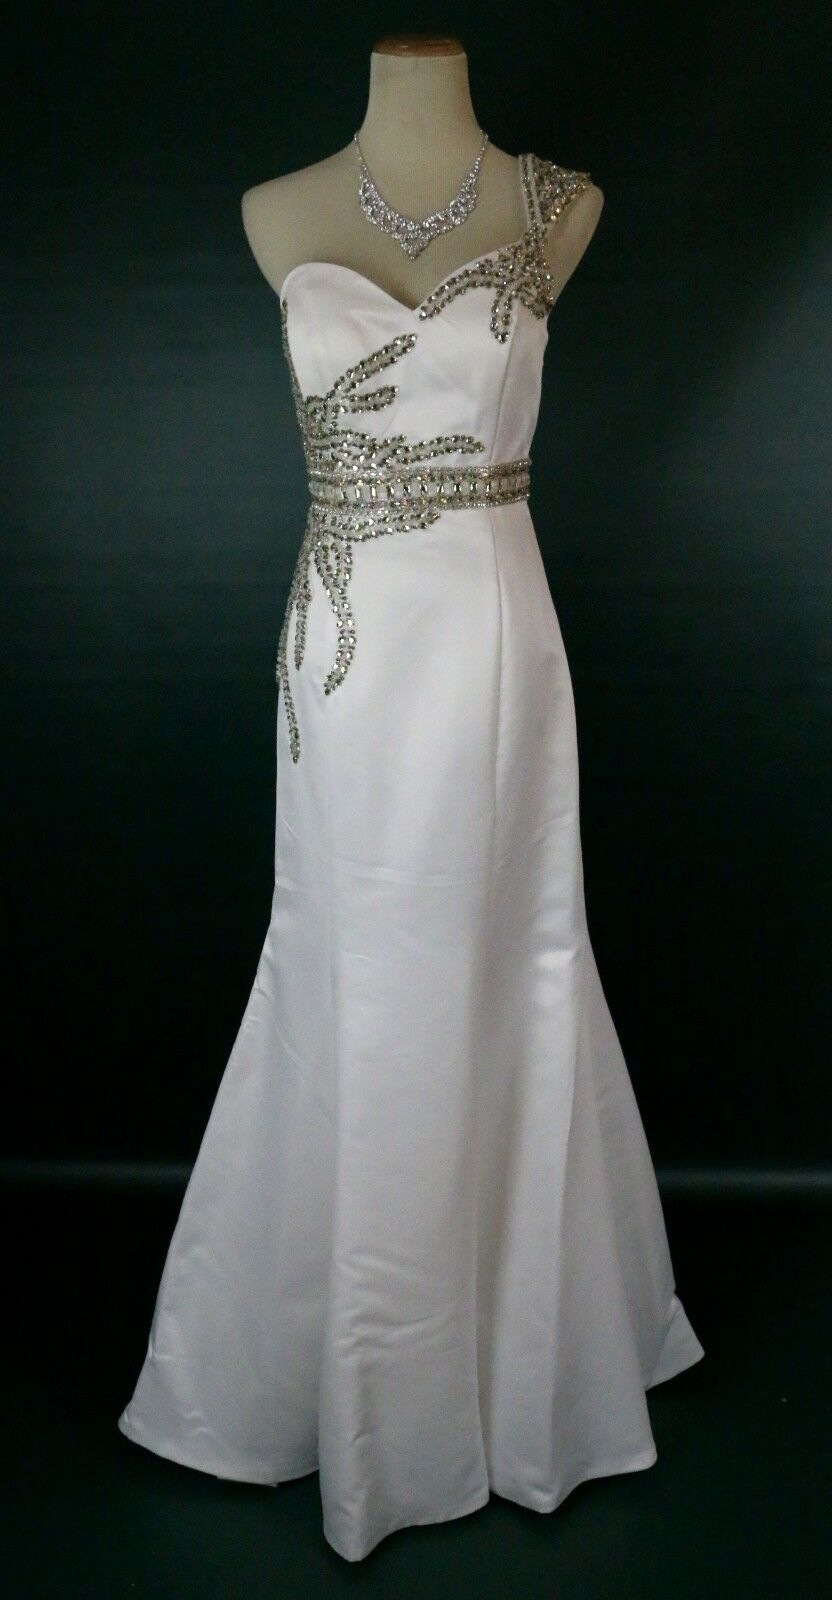 400 TERANI Couture P722 One Shoulder Prom Formal Evening Gown Ivory Size 4 Long